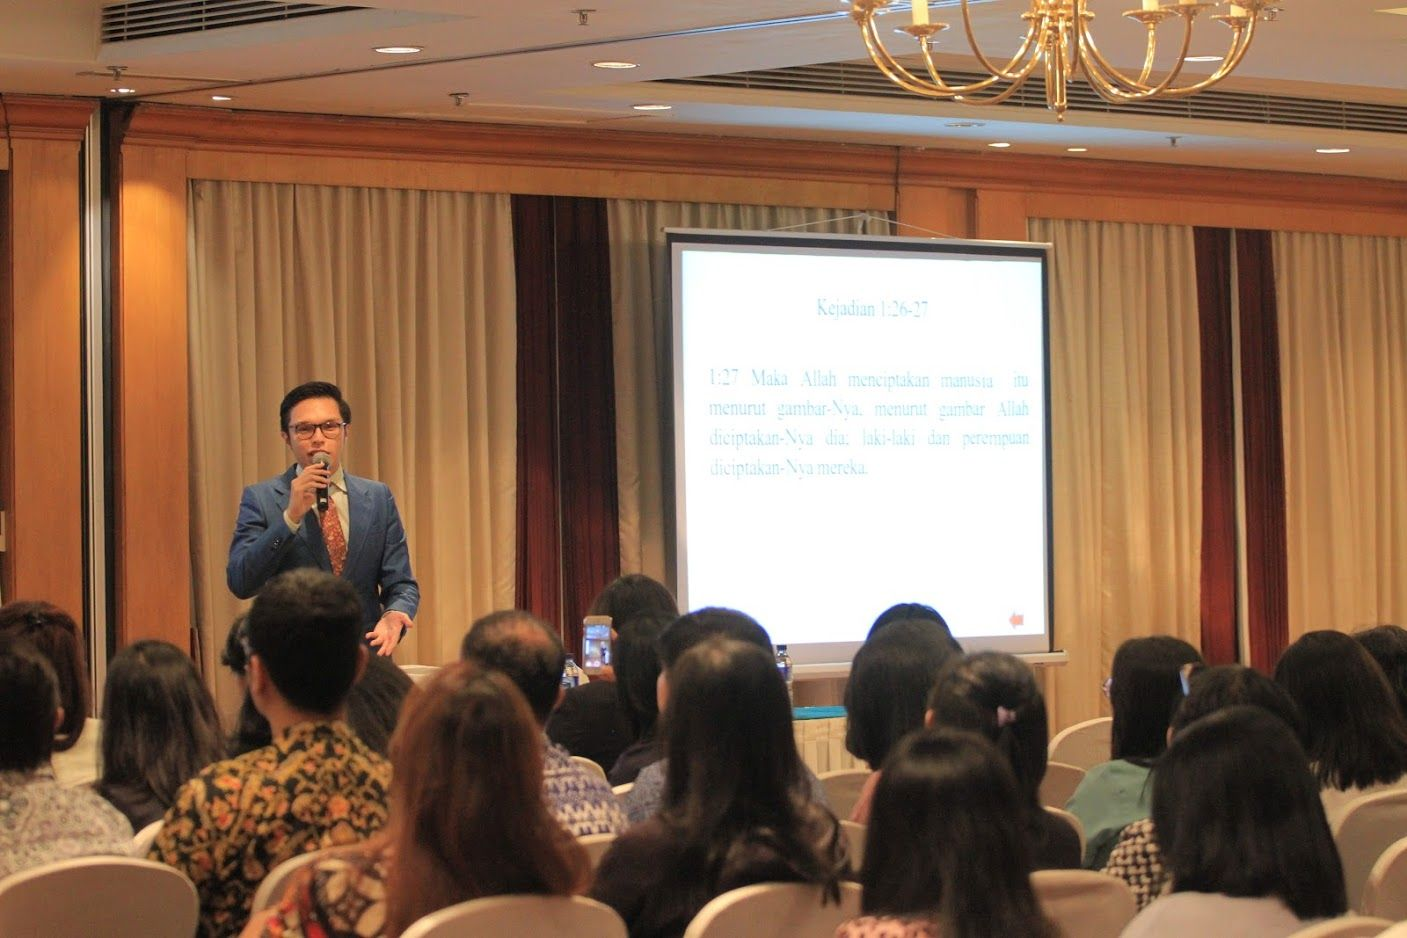 """The Seminar of """"The Miracle of Self Identity,"""" WTC Building, Sudirman"""